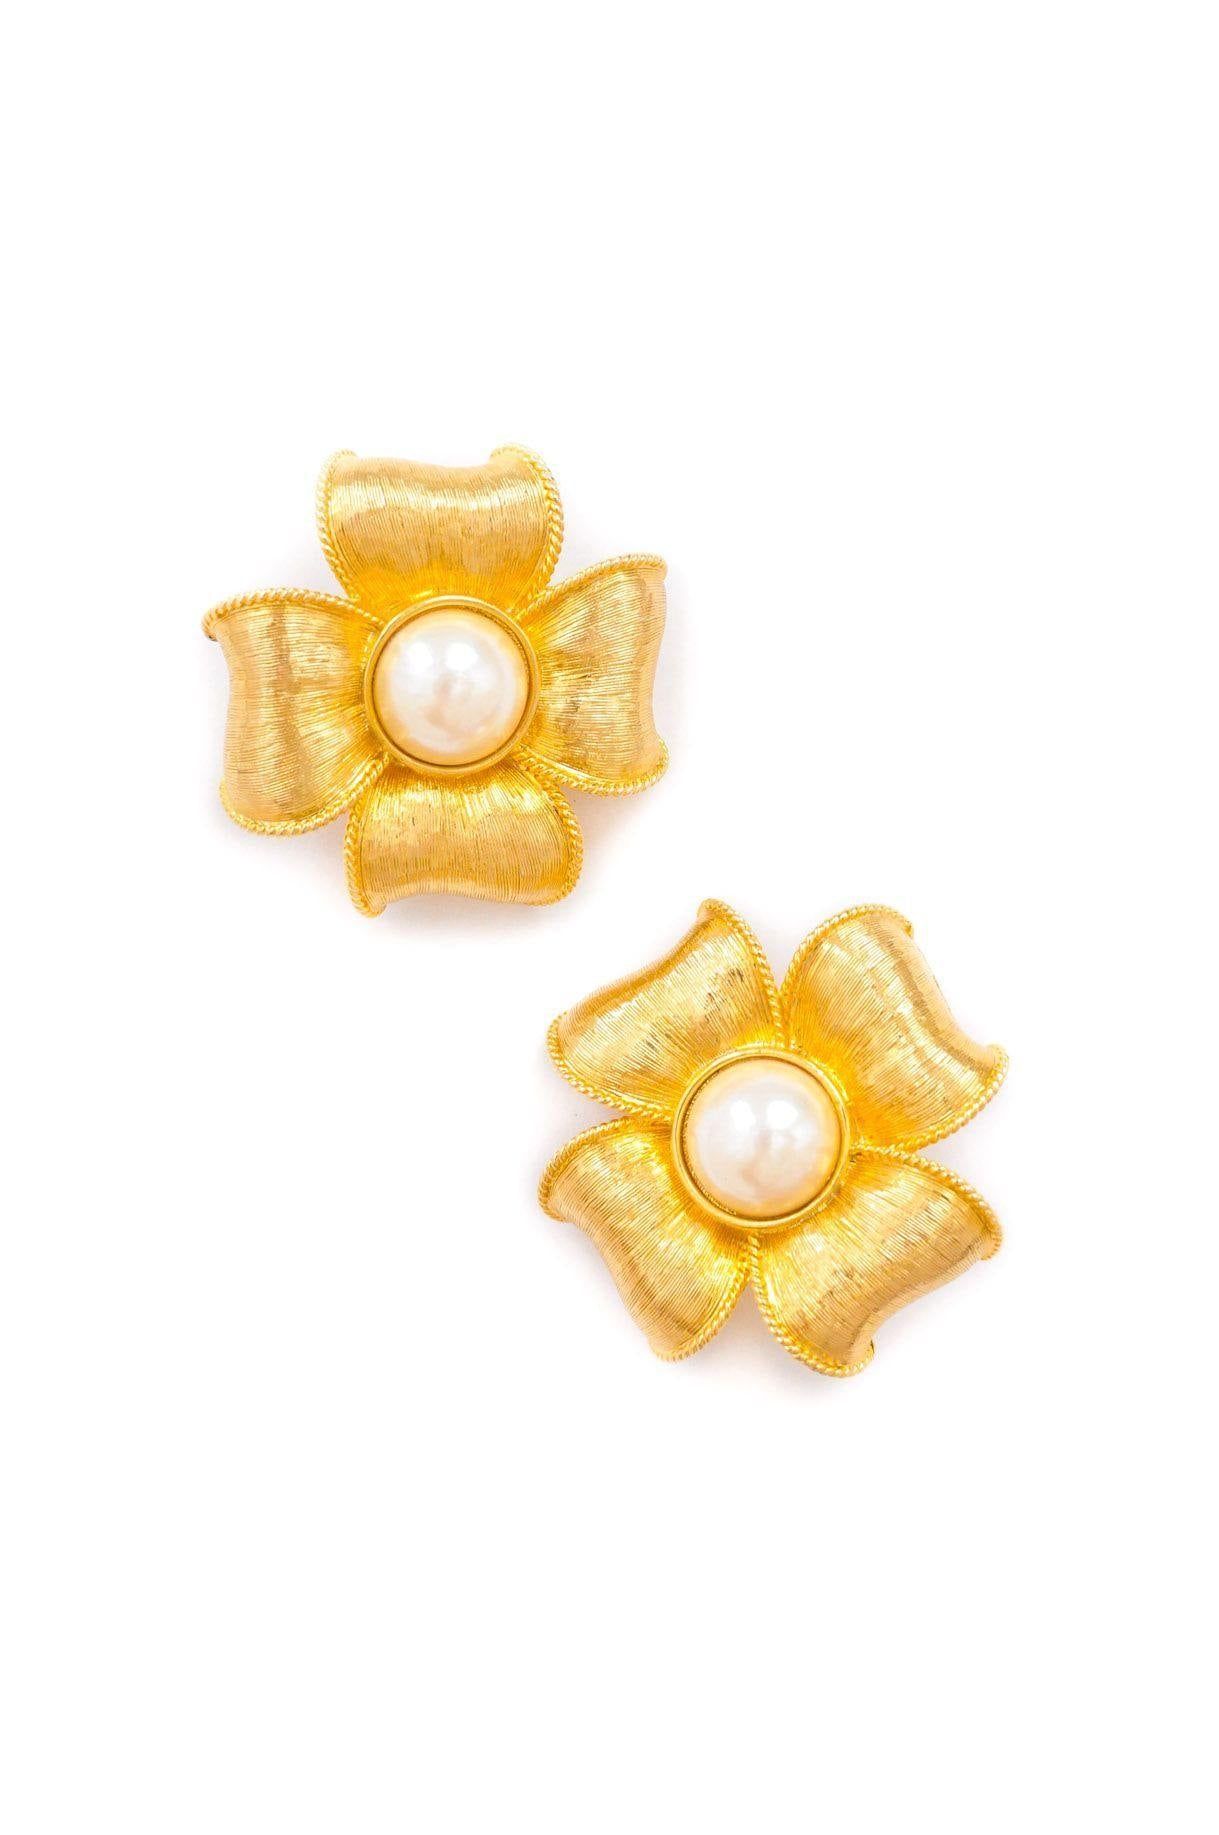 Givenchy Floral Pearl Clip-on Earrings from Sweet and Spark.